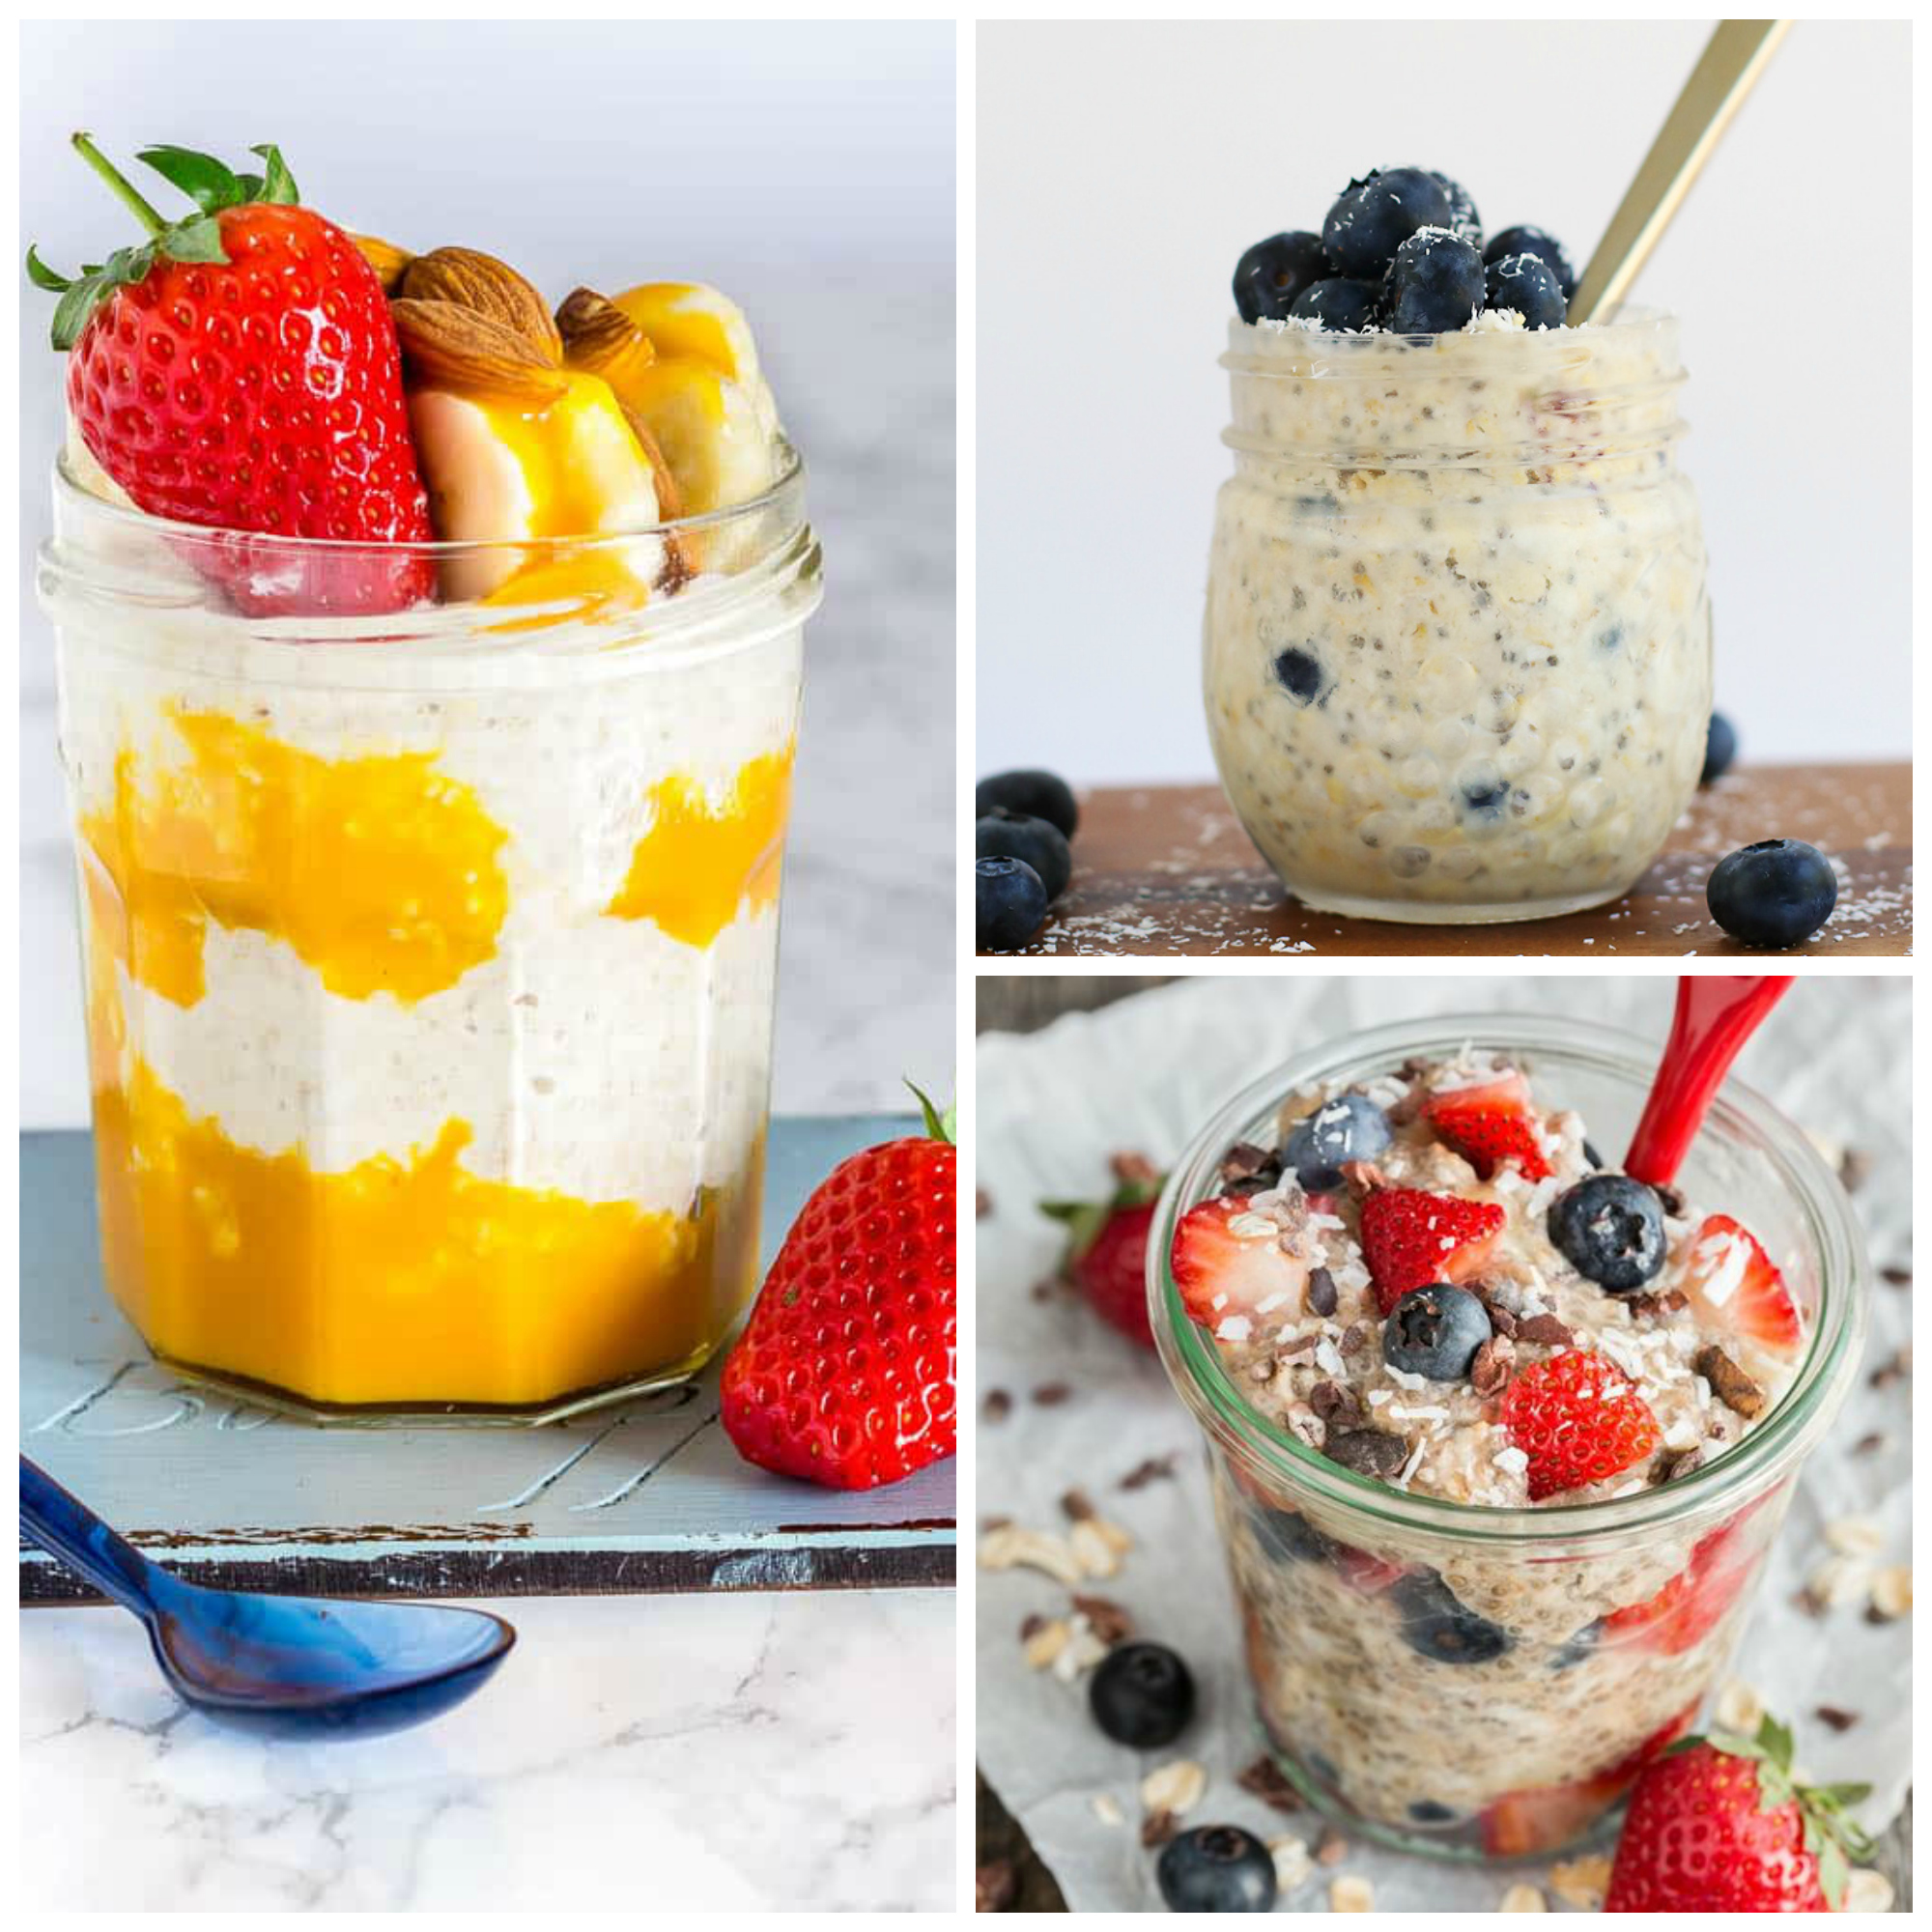 11 Vegan Overnight Oats Recipes You're Gonna Devour